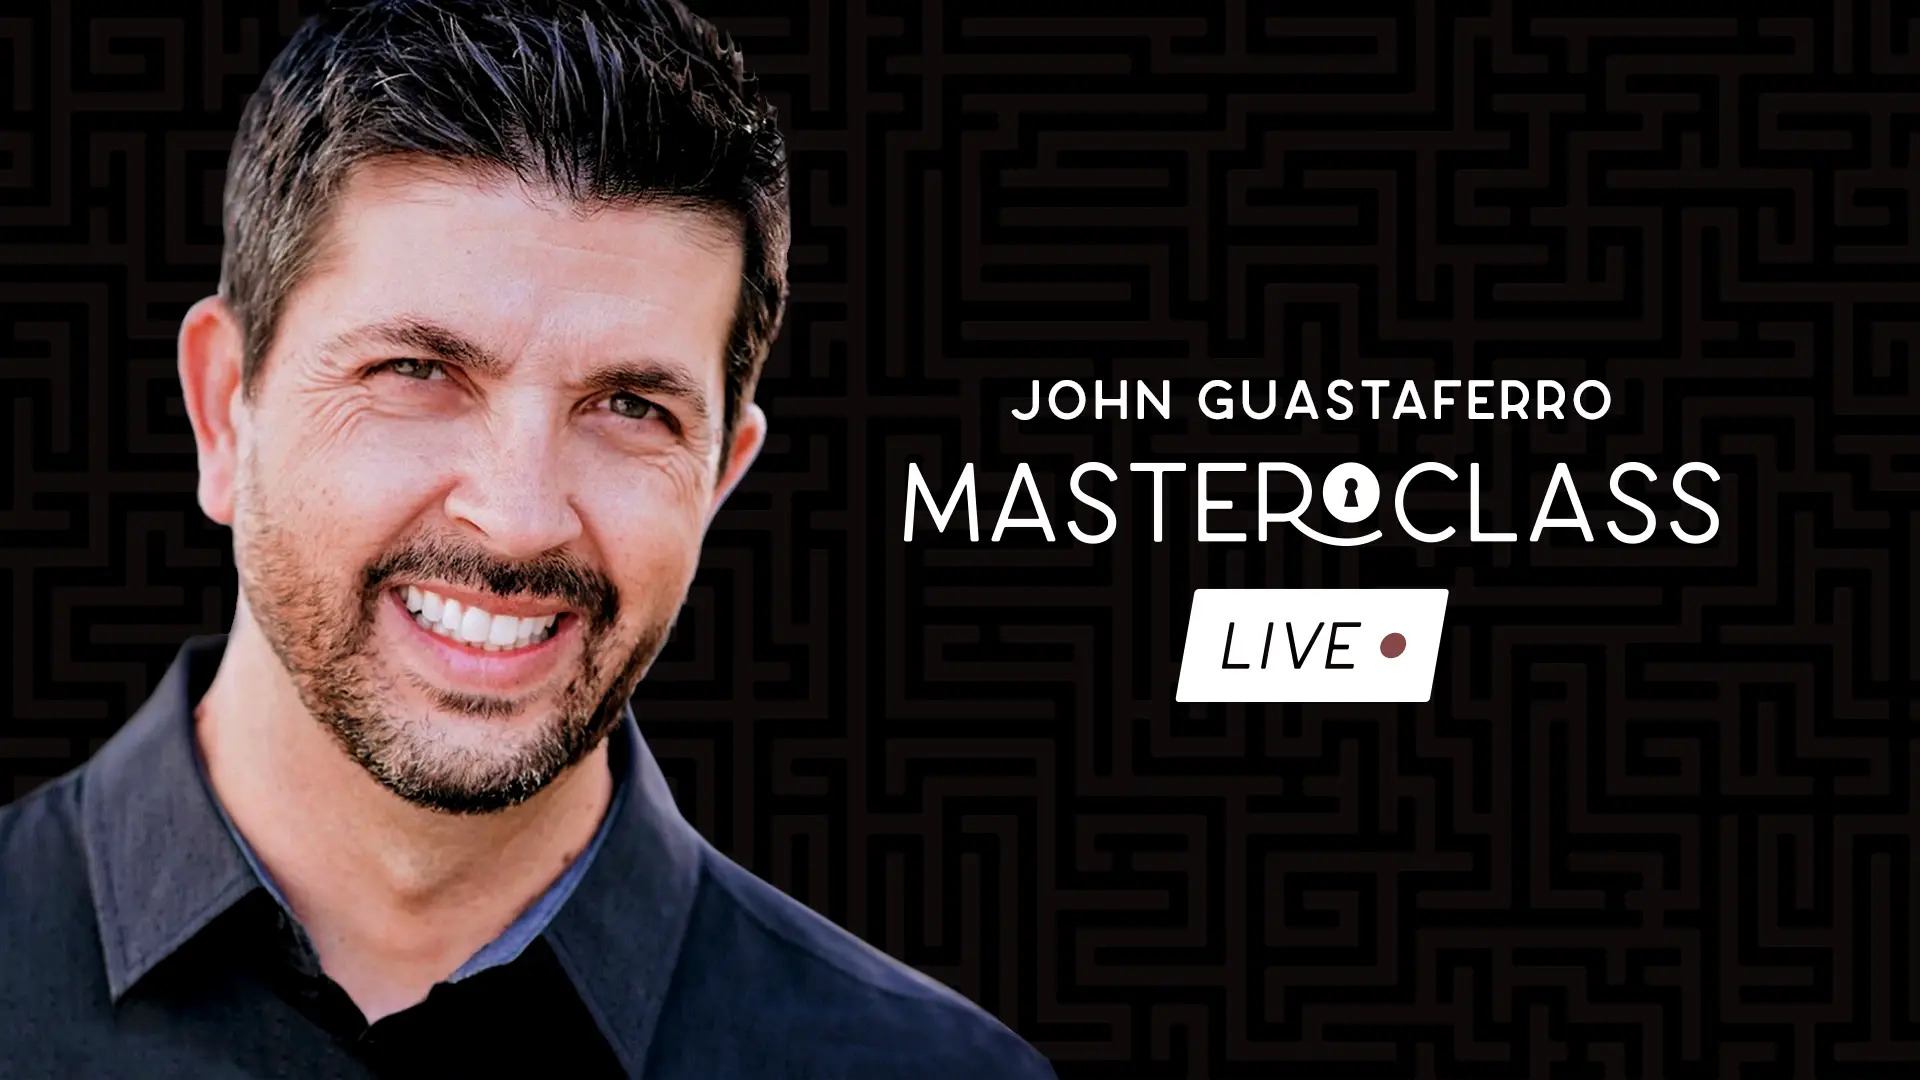 Masterclass Live Lecture by John Guastaferro (Zoom Live) (MP4 Video Download)